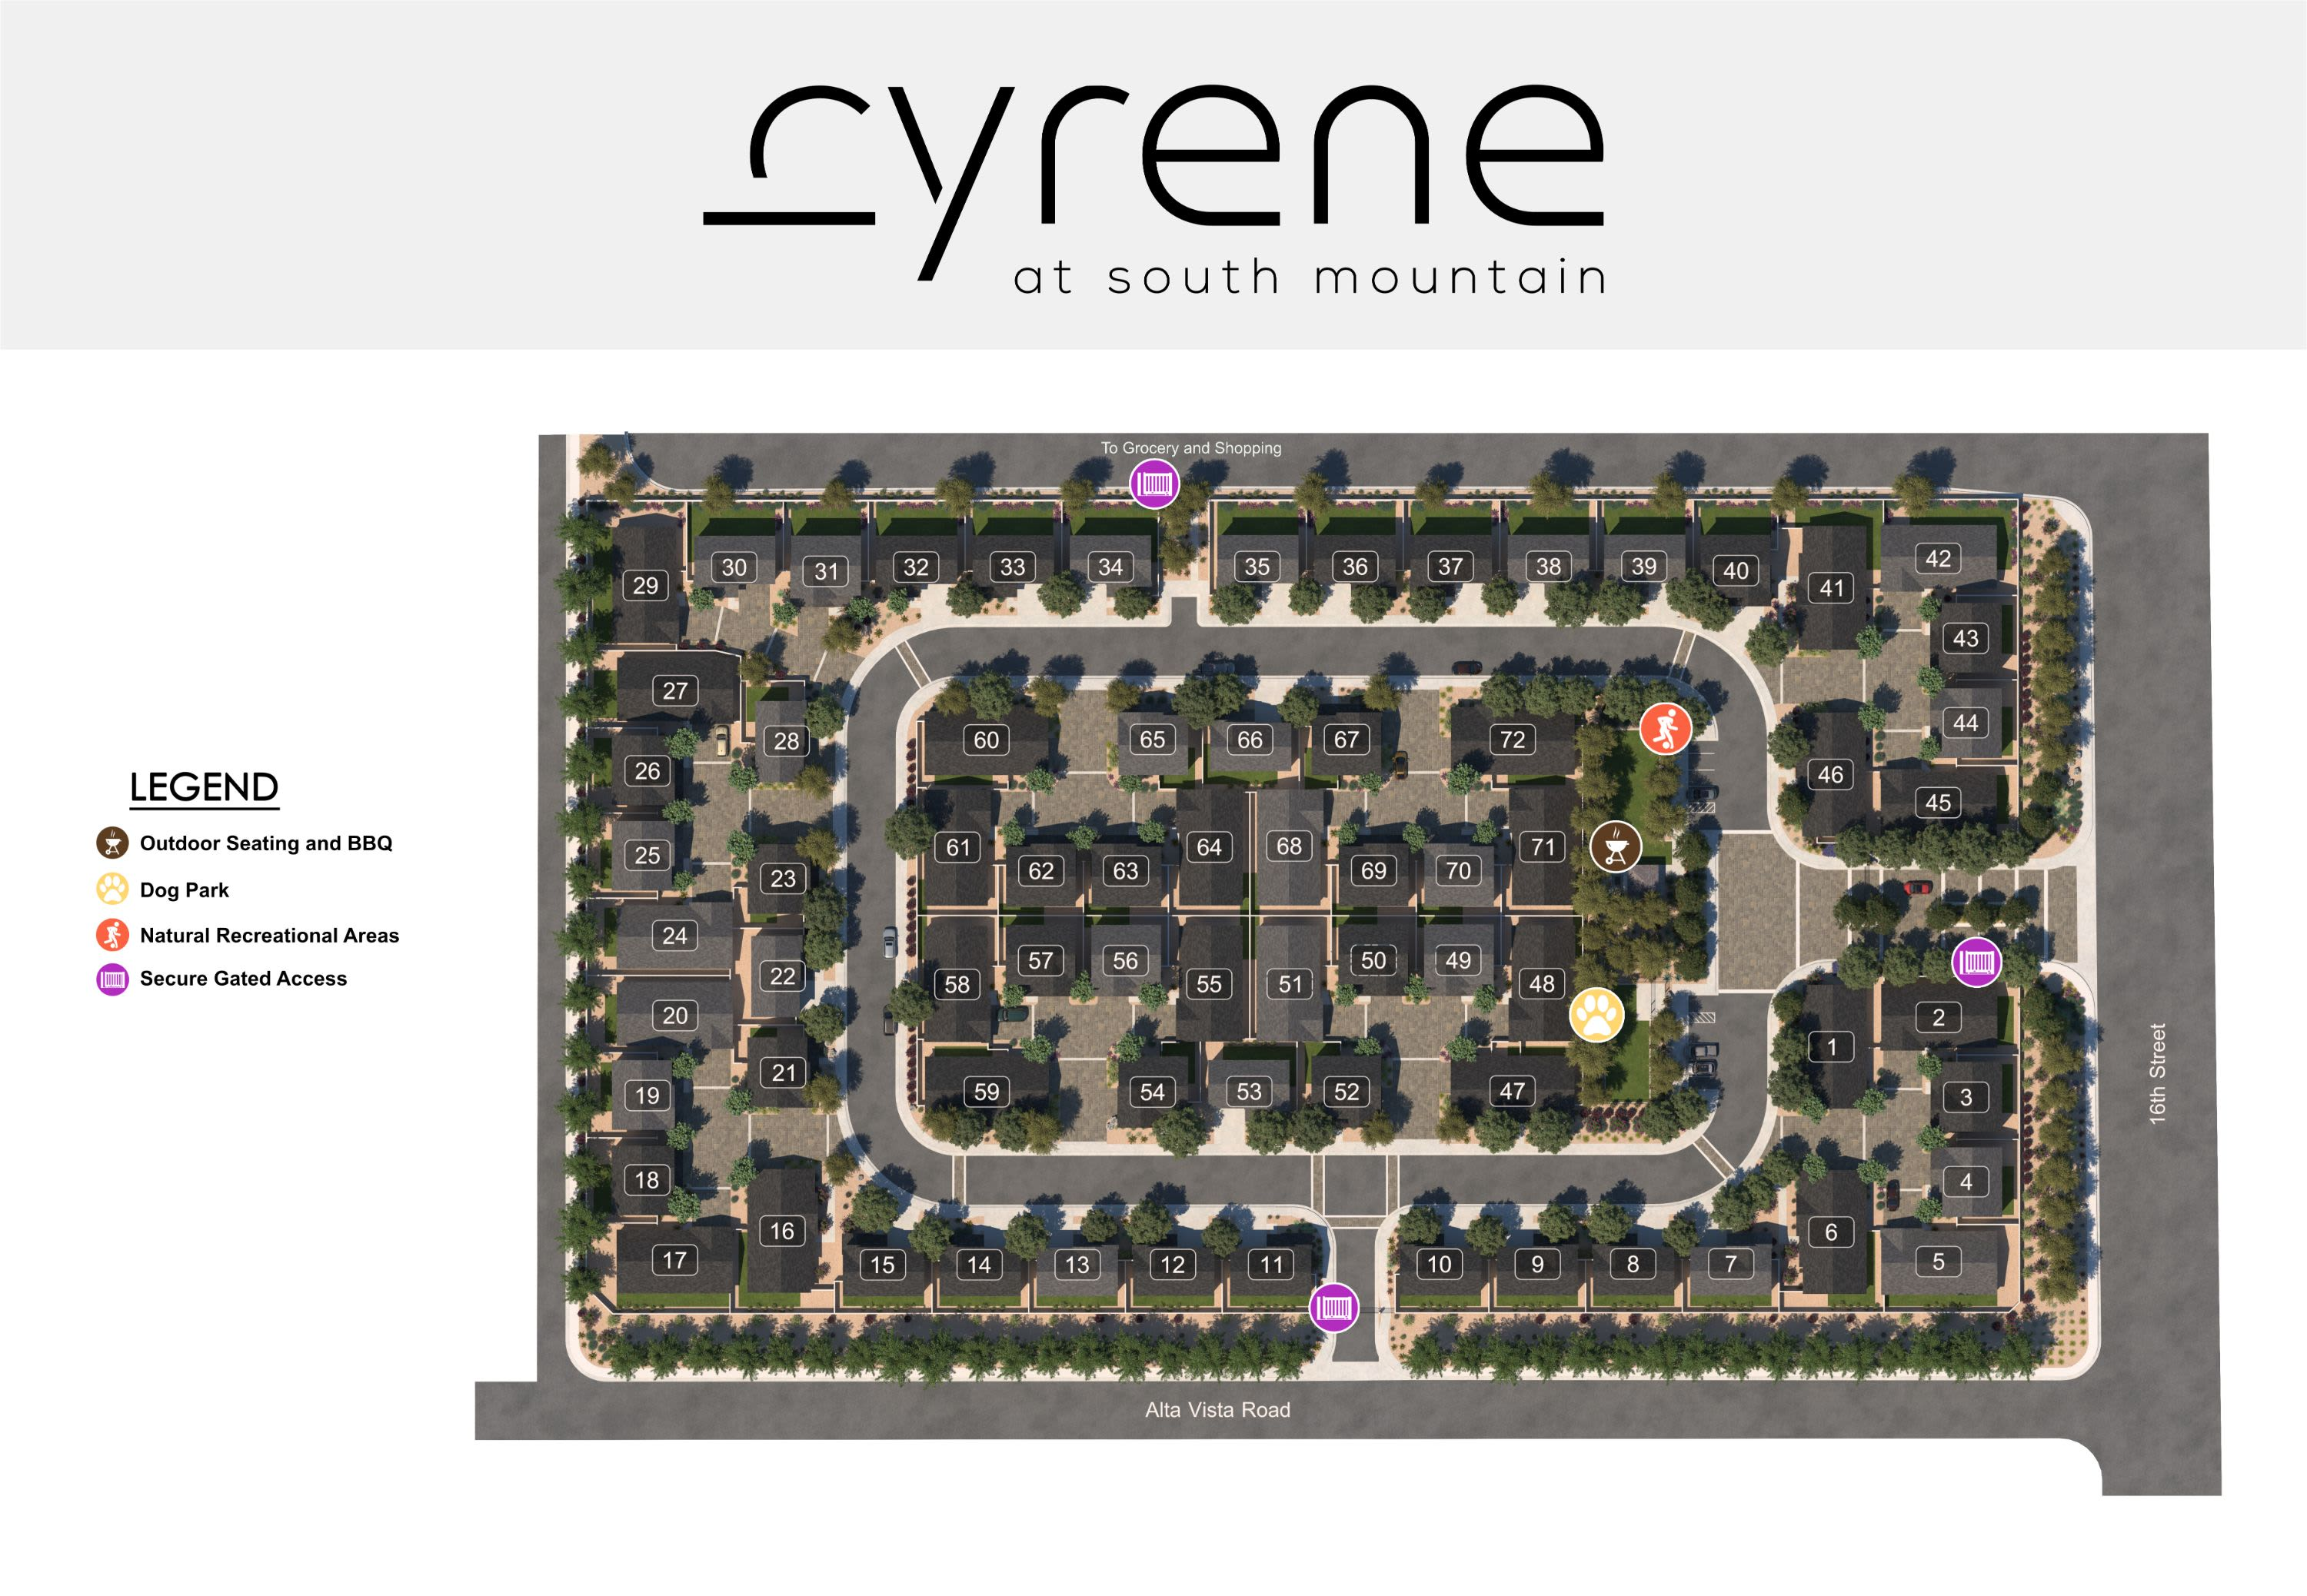 Cyrene at South Mountain site plan